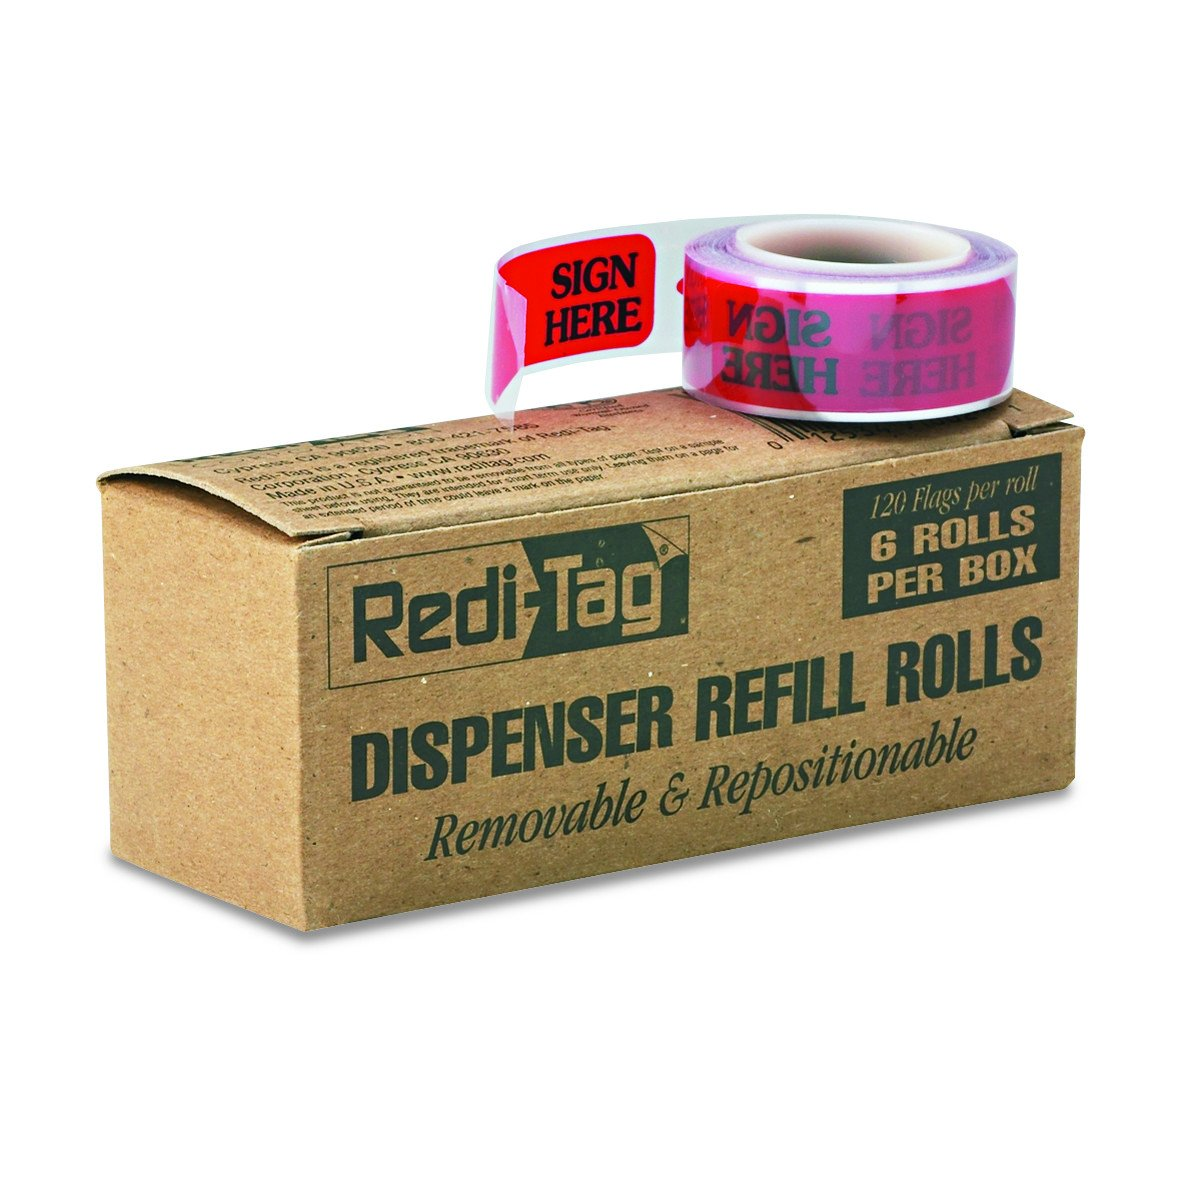 Redi-Tag Self-Stick''SIGN HERE'' Arrow Flags for Documents, Message Arrow Page Flag Refills, Red, 120 Flags per Roll (Box of 6 Rolls) (91002)